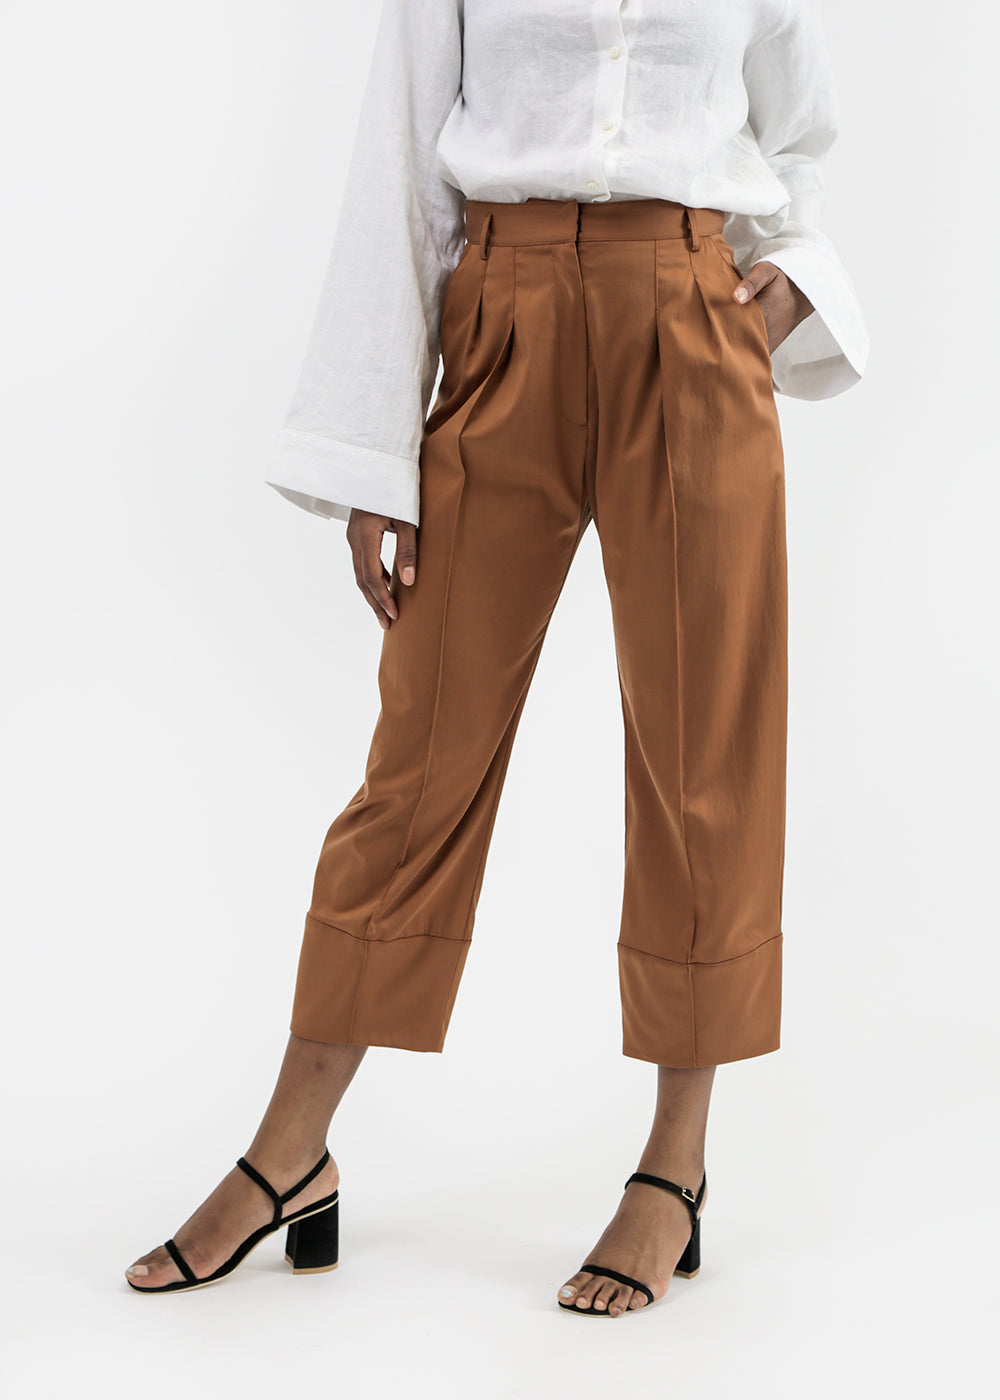 Arcana NYC Bone Clocks Trouser — Shop sustainable fashion and slow fashion at New Classics Studios